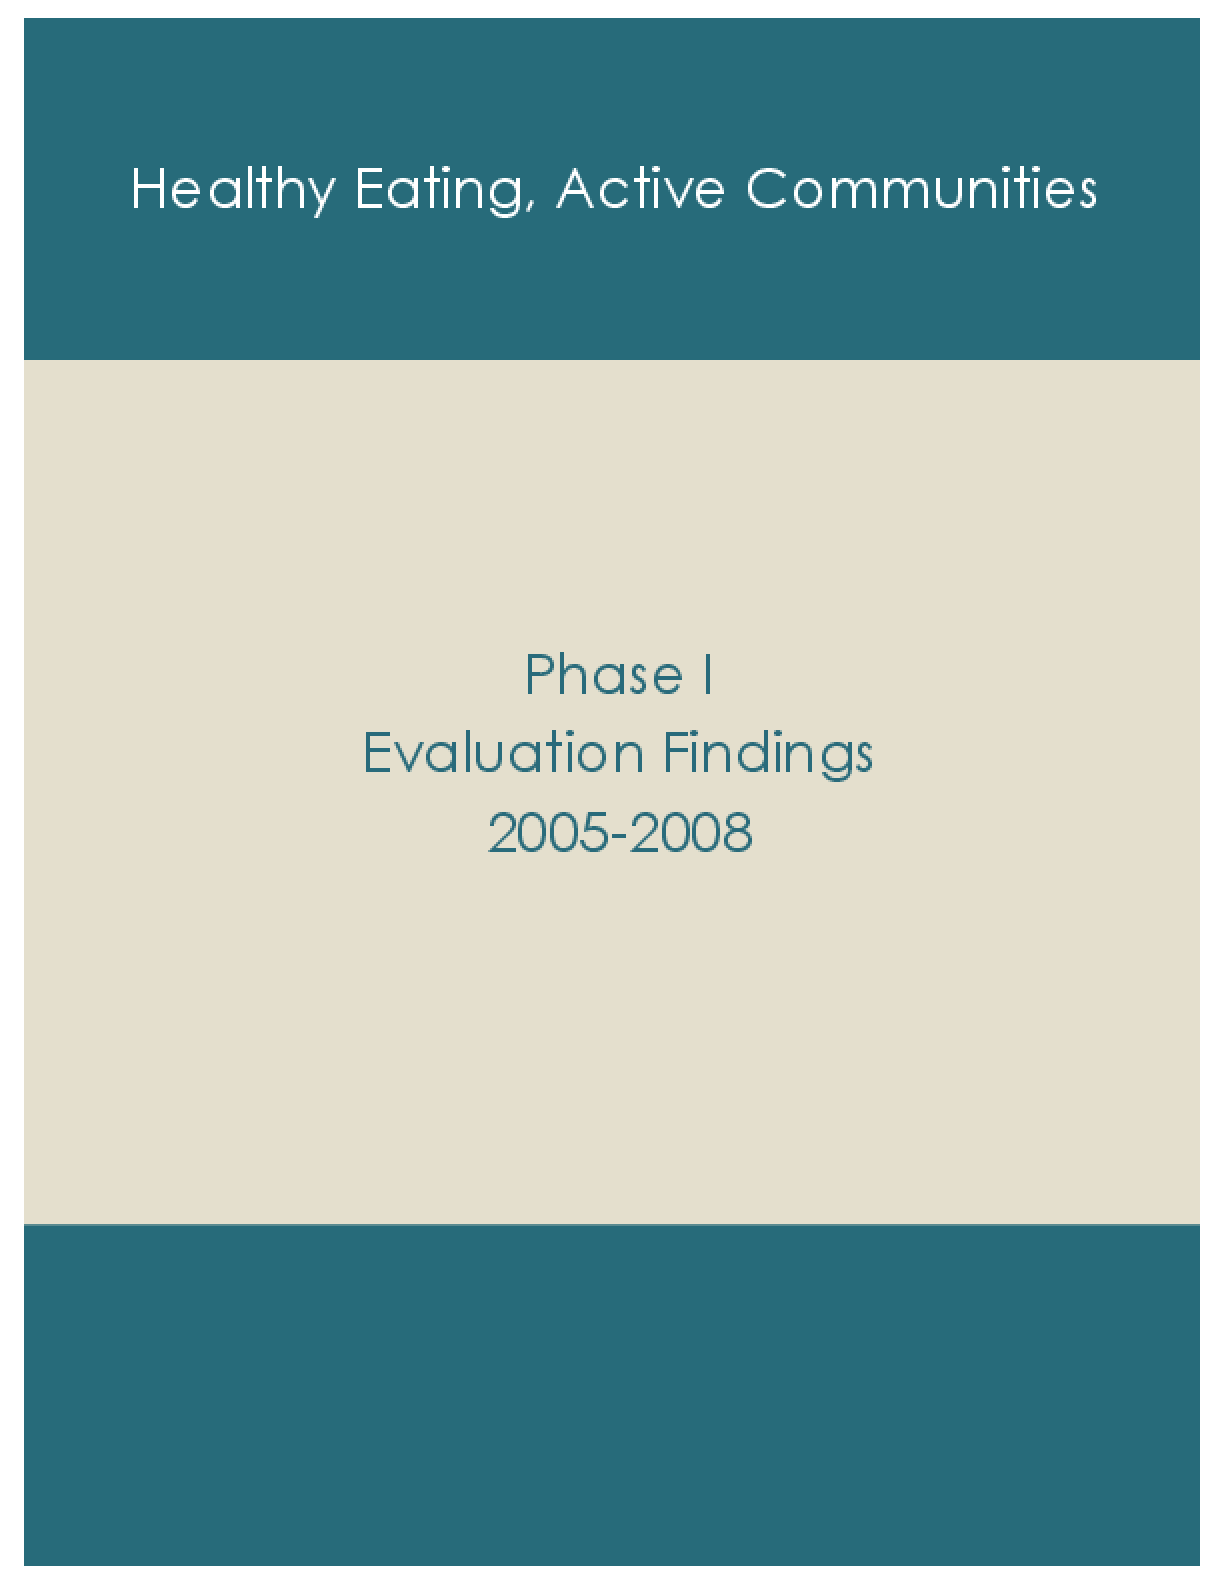 Healthy Eating, Active Communities: Phase I Evaluation Findings 2005-2008